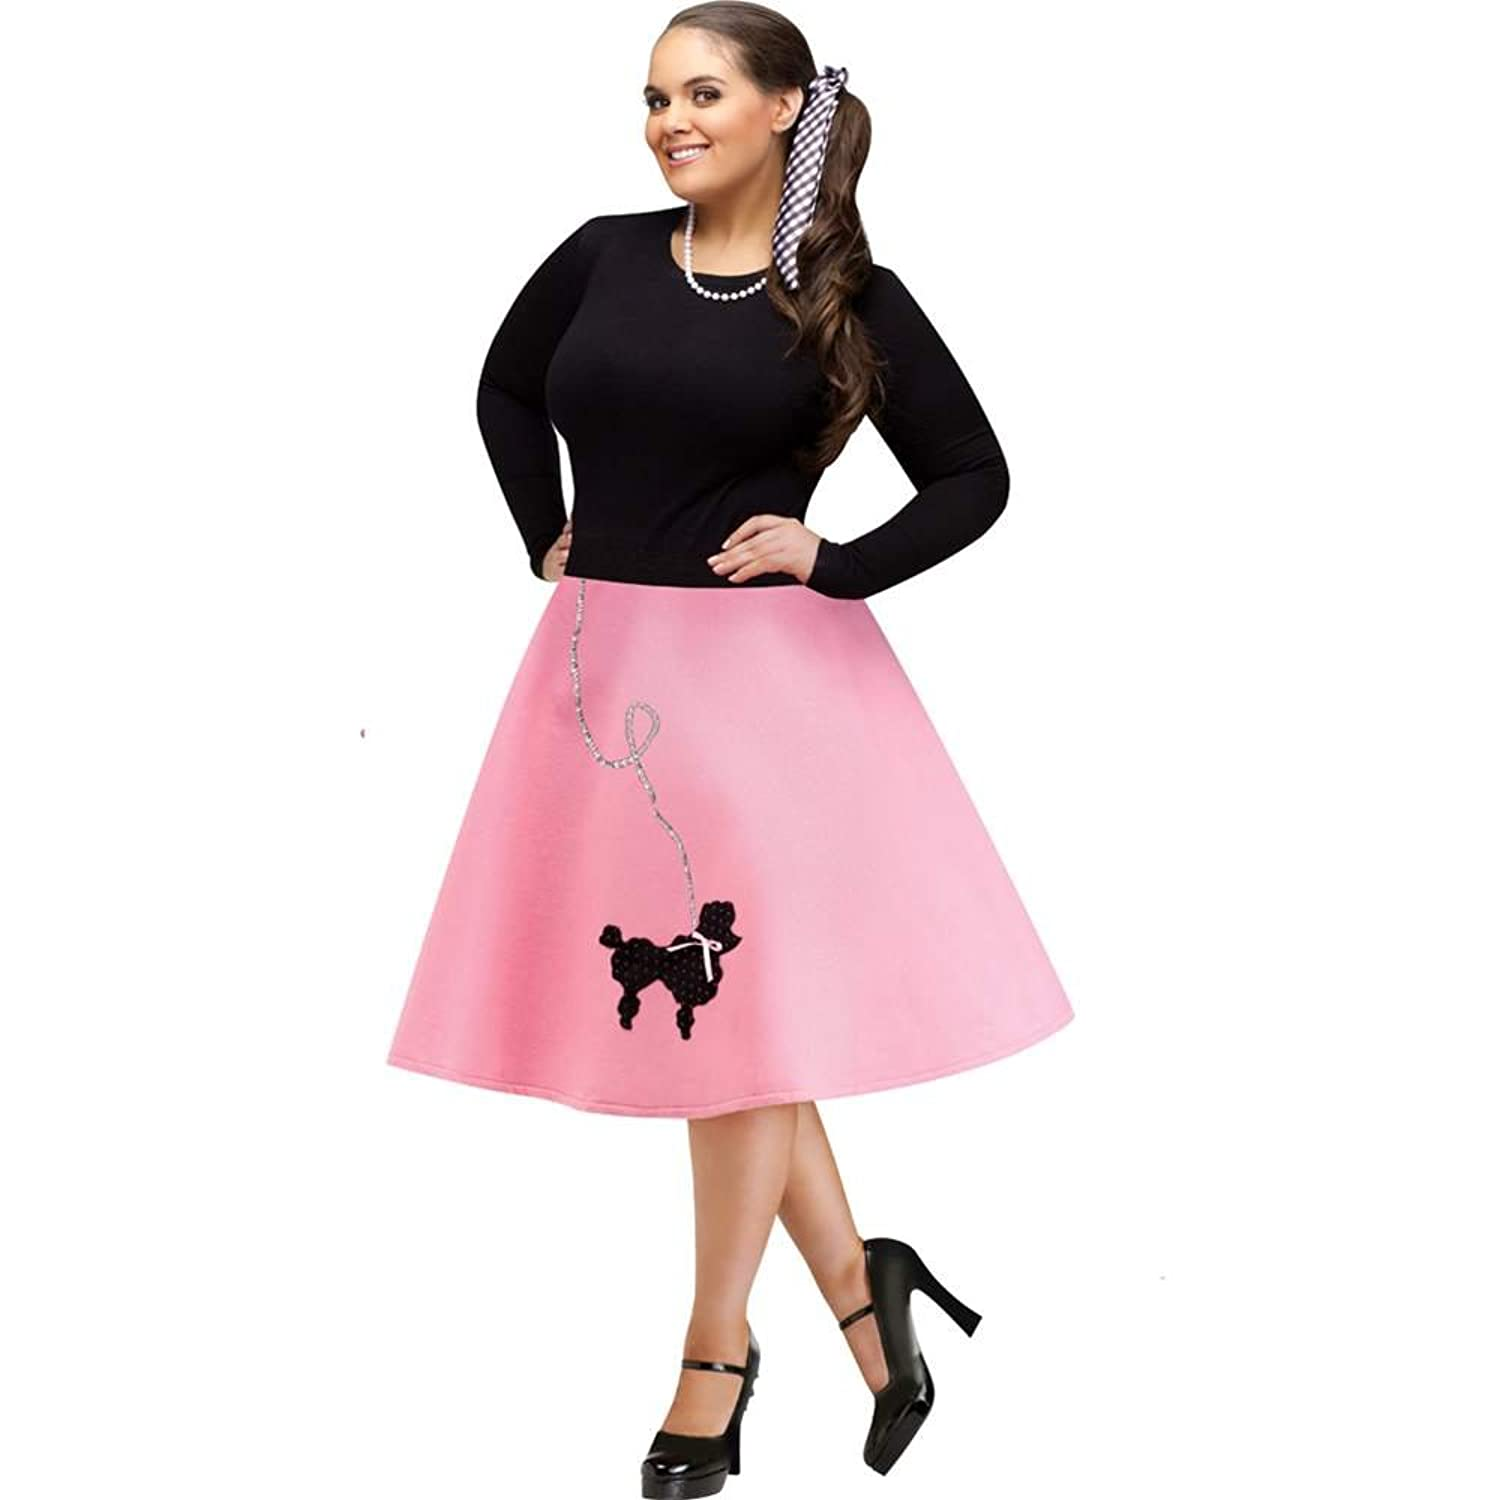 1950s Costumes- Poodle Skirts, Grease, Monroe, Pin Up, I Love Lucy FunWorld Plus-Size Poodle Skirt Costume $18.99 AT vintagedancer.com